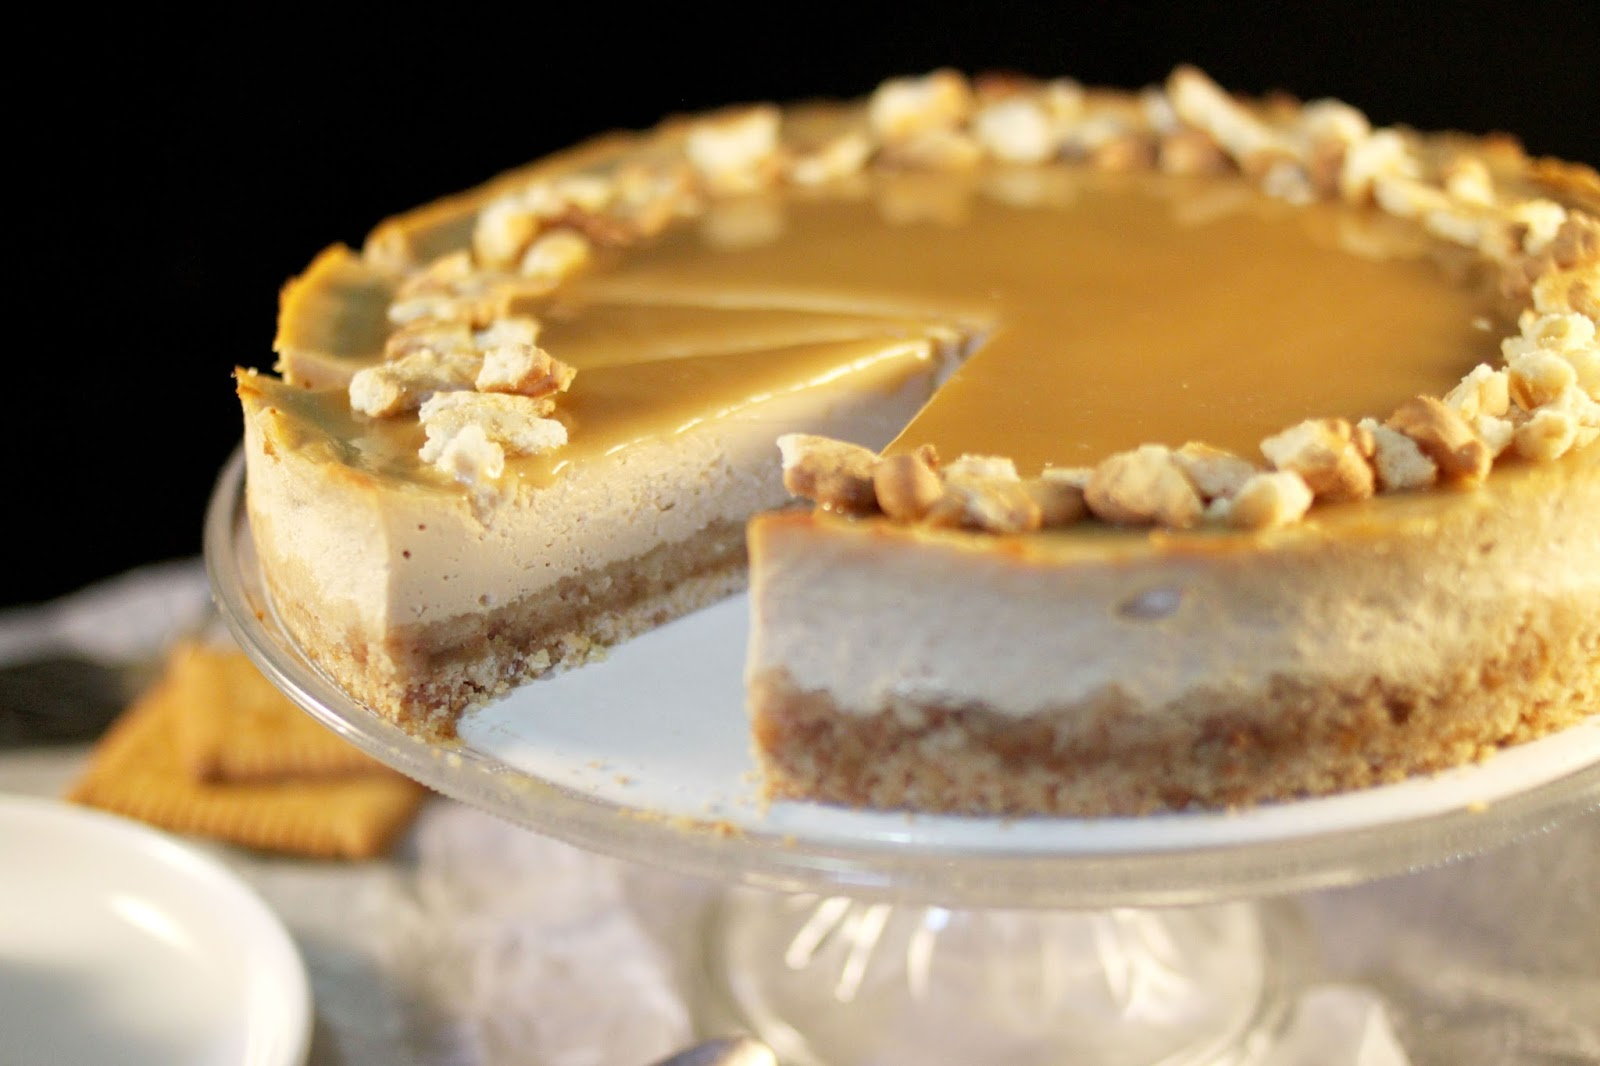 Chlo d lice cheesecake aux petits beurre caramel beurre sal - Recette caramel beurre sale breton ...